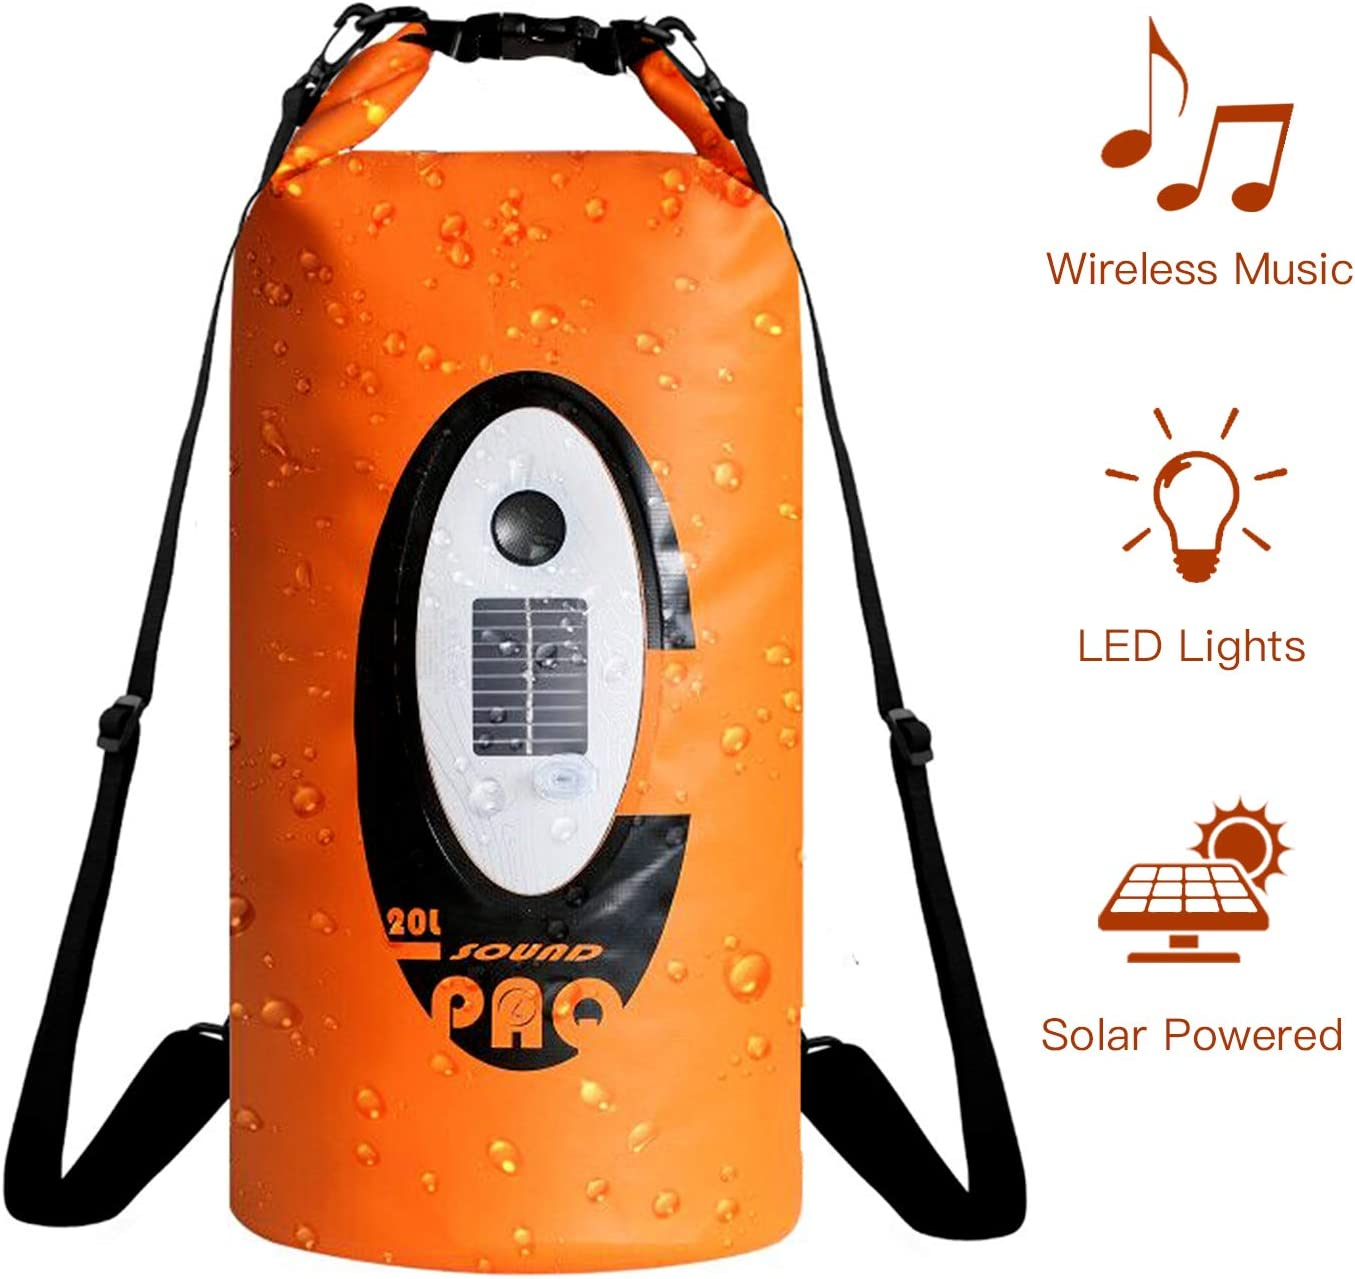 ztarx Waterproof Dry Bag Speaker, Dry Bag Backpack with Bluetooth Speaker Solar Powered and USB Powered 20L Roll Top Dry Sack Keeps Gear Dry for Kayaking, Rafting, Boating,Camping